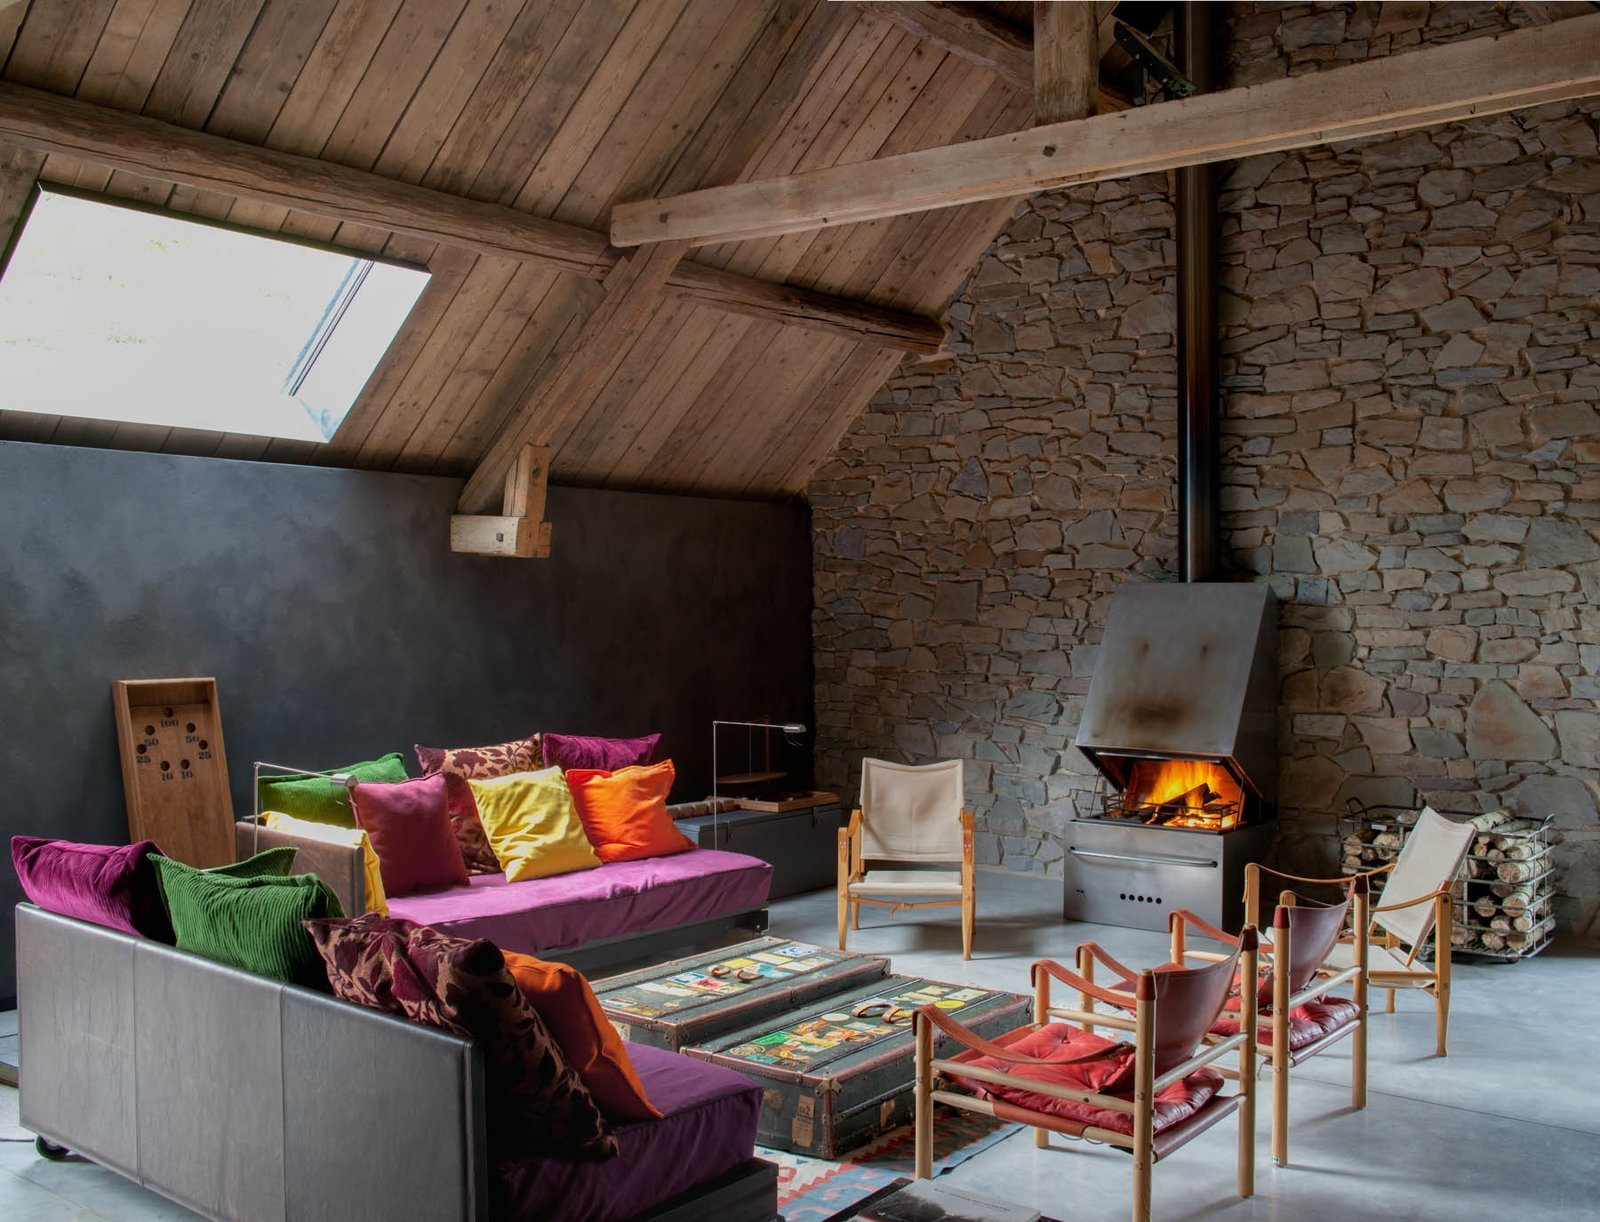 Living Room, Chair, Concrete Floor, Rug Floor, Standard Layout Fireplace, Wood Burning Fireplace, Sofa, Floor Lighting, and Coffee Tables The property has a soaring sense of space thanks to the vaulted ceilings.  Photo 5 of 16 in Stay at an Old Converted Train Station in the Belgian Countryside